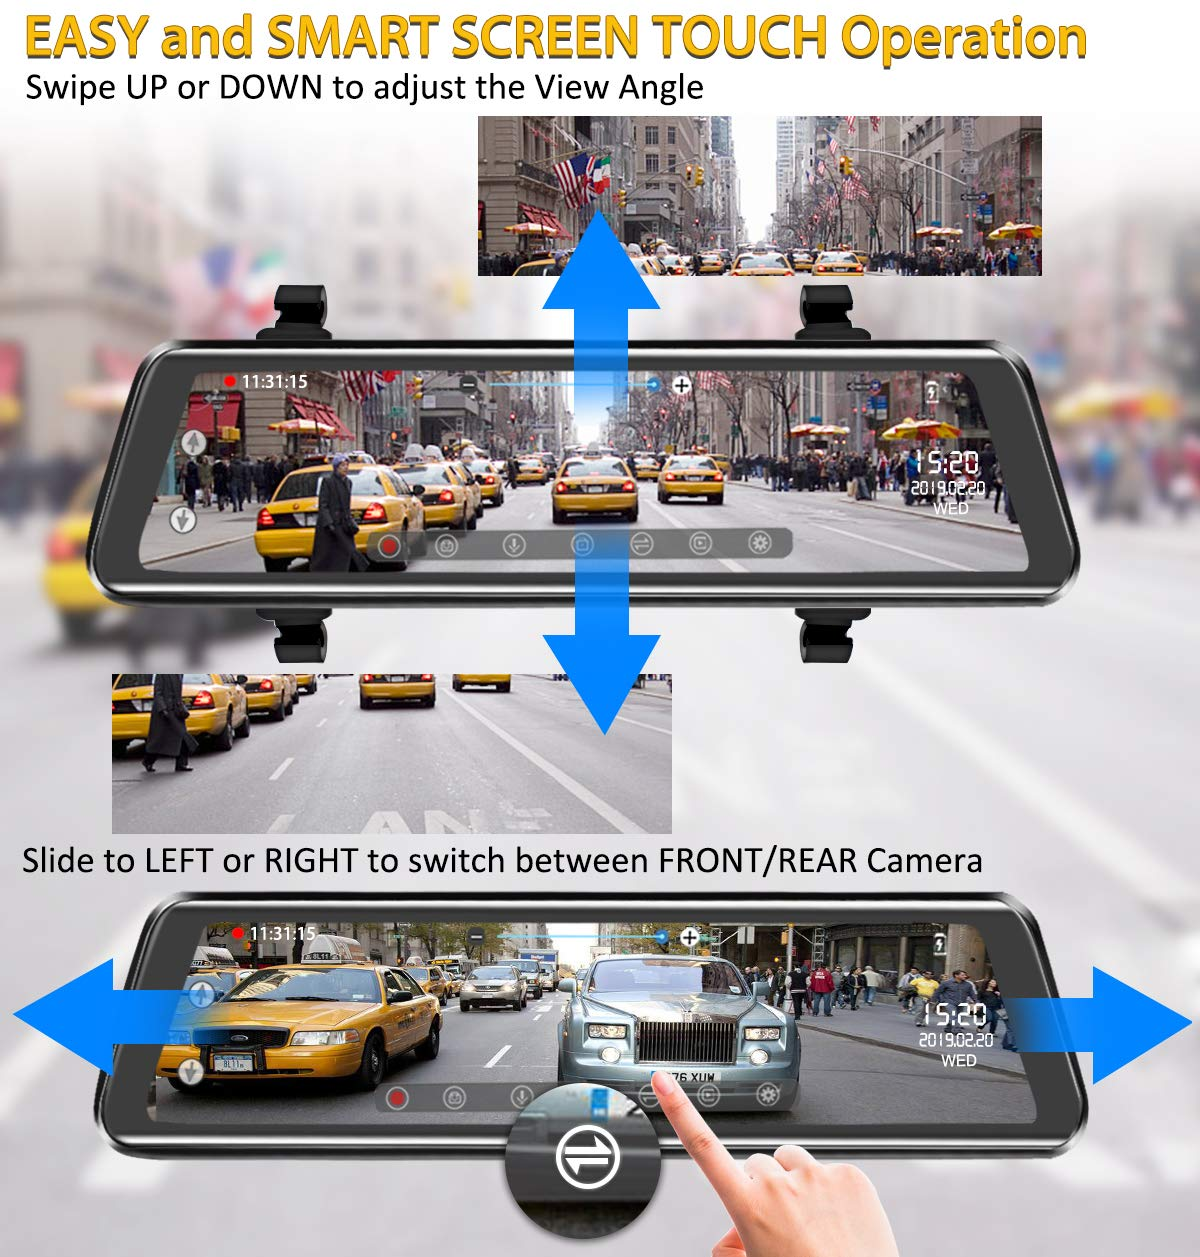 Mirror Dash Cam 9.88 inch Full Touch Screen Car Backup Camera Dual Recording HD Front 1080P 170° Wide Angle 1080P Rear View Camera 150° URVOLAX Night Vision,24-Hour Parking,GPS, SD Card by URVOLAX (Image #4)